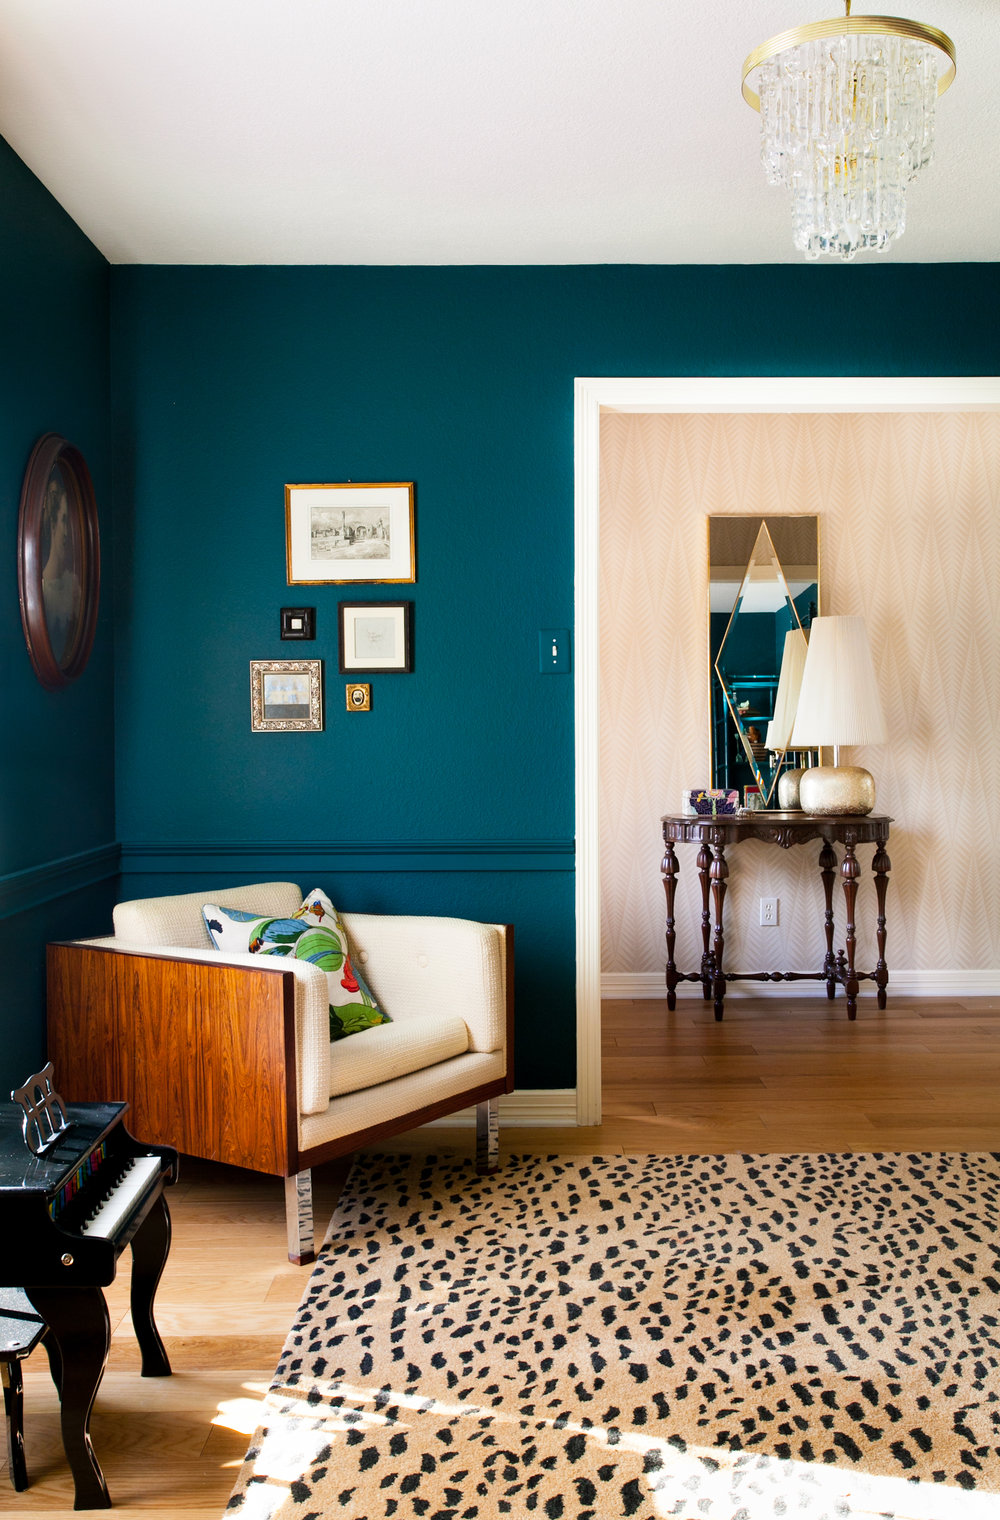 How to decorate with jewel tones living after midnite - Jewel tone living room ...